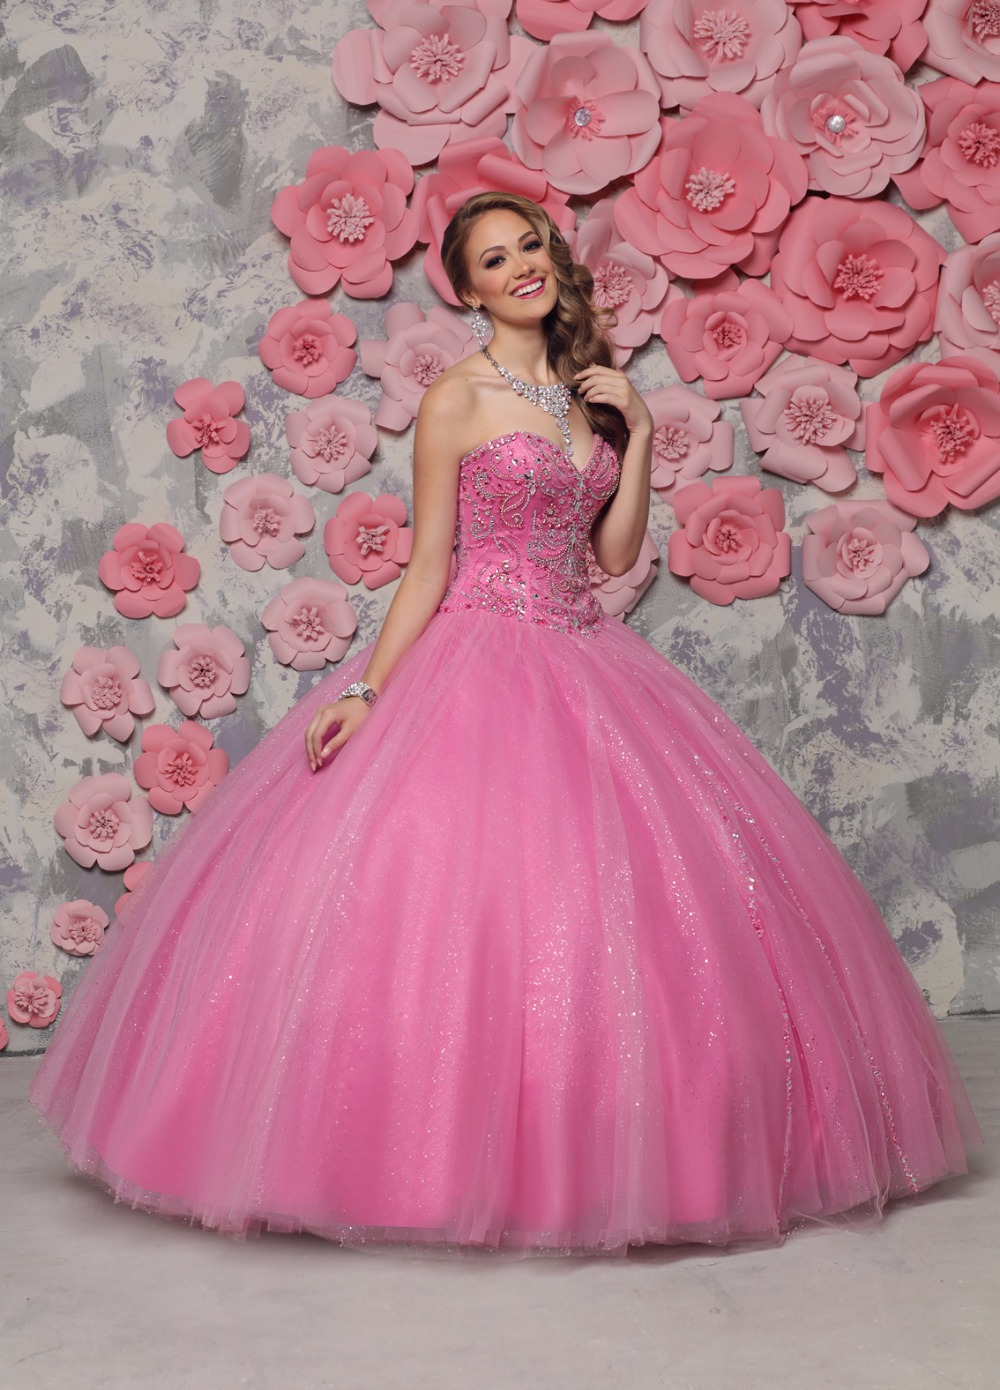 Hot Pink 2017 Ball Gown Prom Quinceaneara Dresses